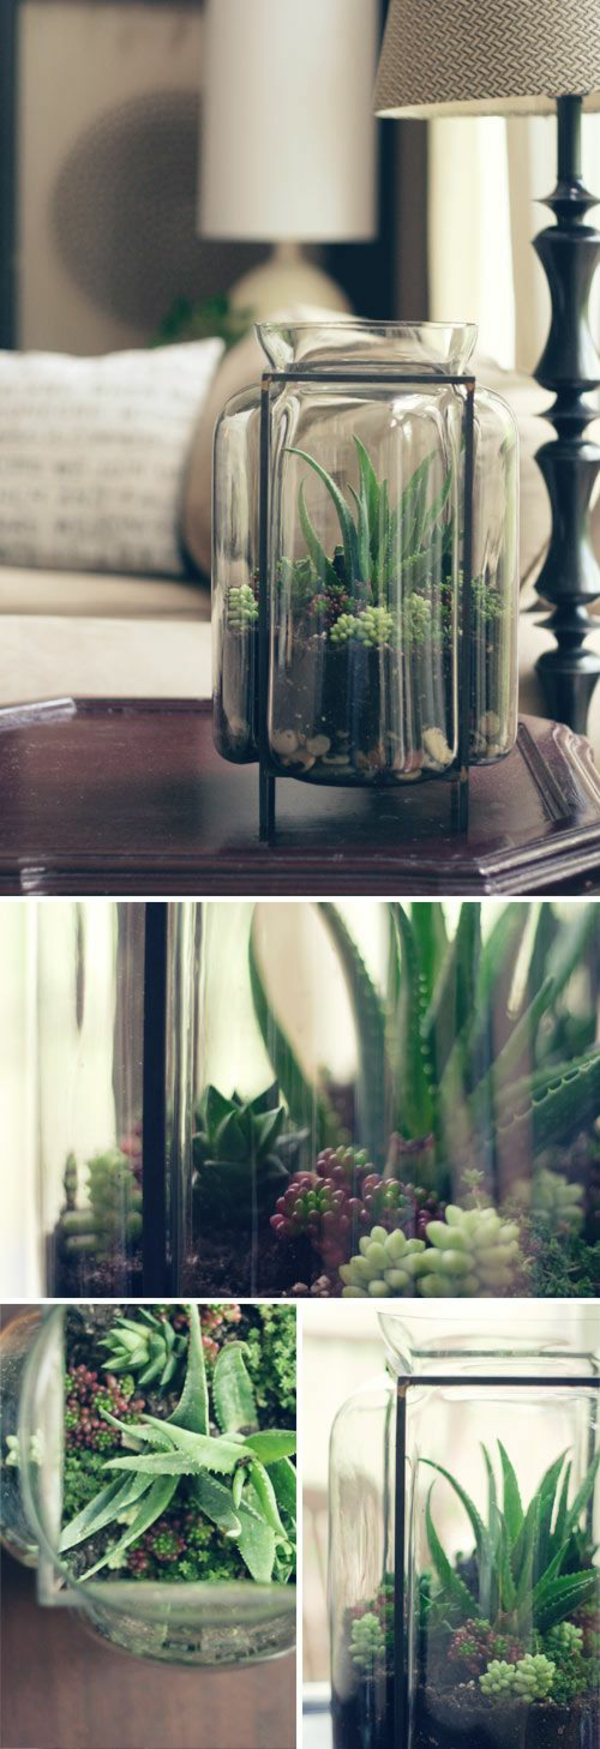 matching terrarium plants glass vessel moss deco products